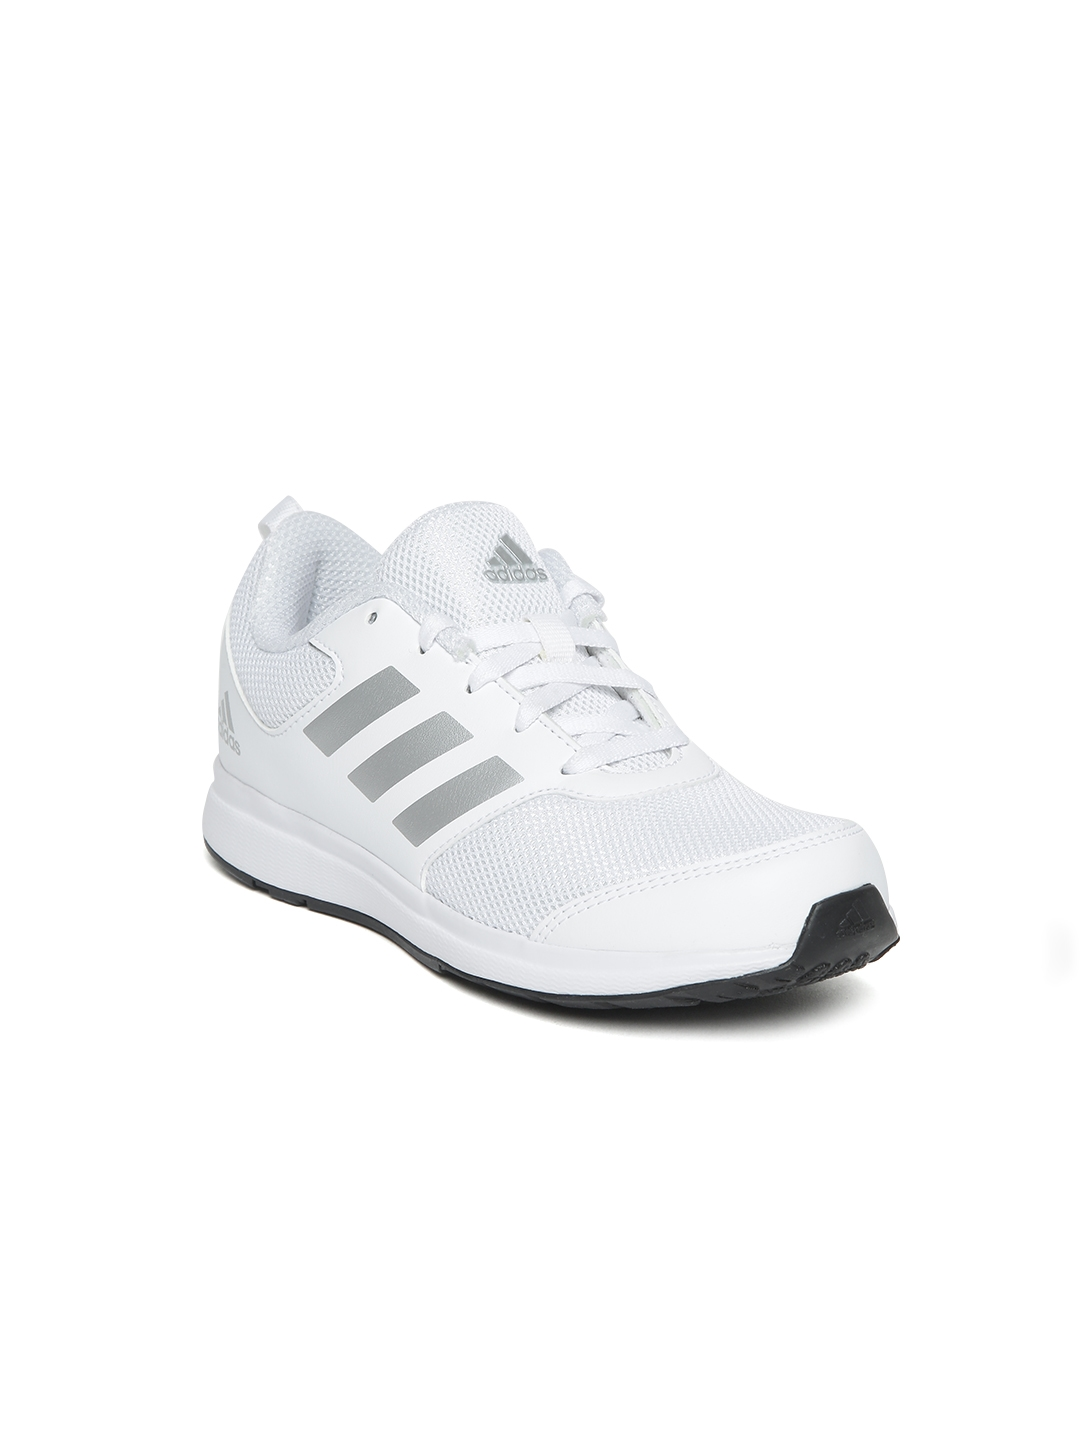 ae364ee10bd0 Buy ADIDAS Boys White YKING Running Shoes - Sports Shoes for Boys ...